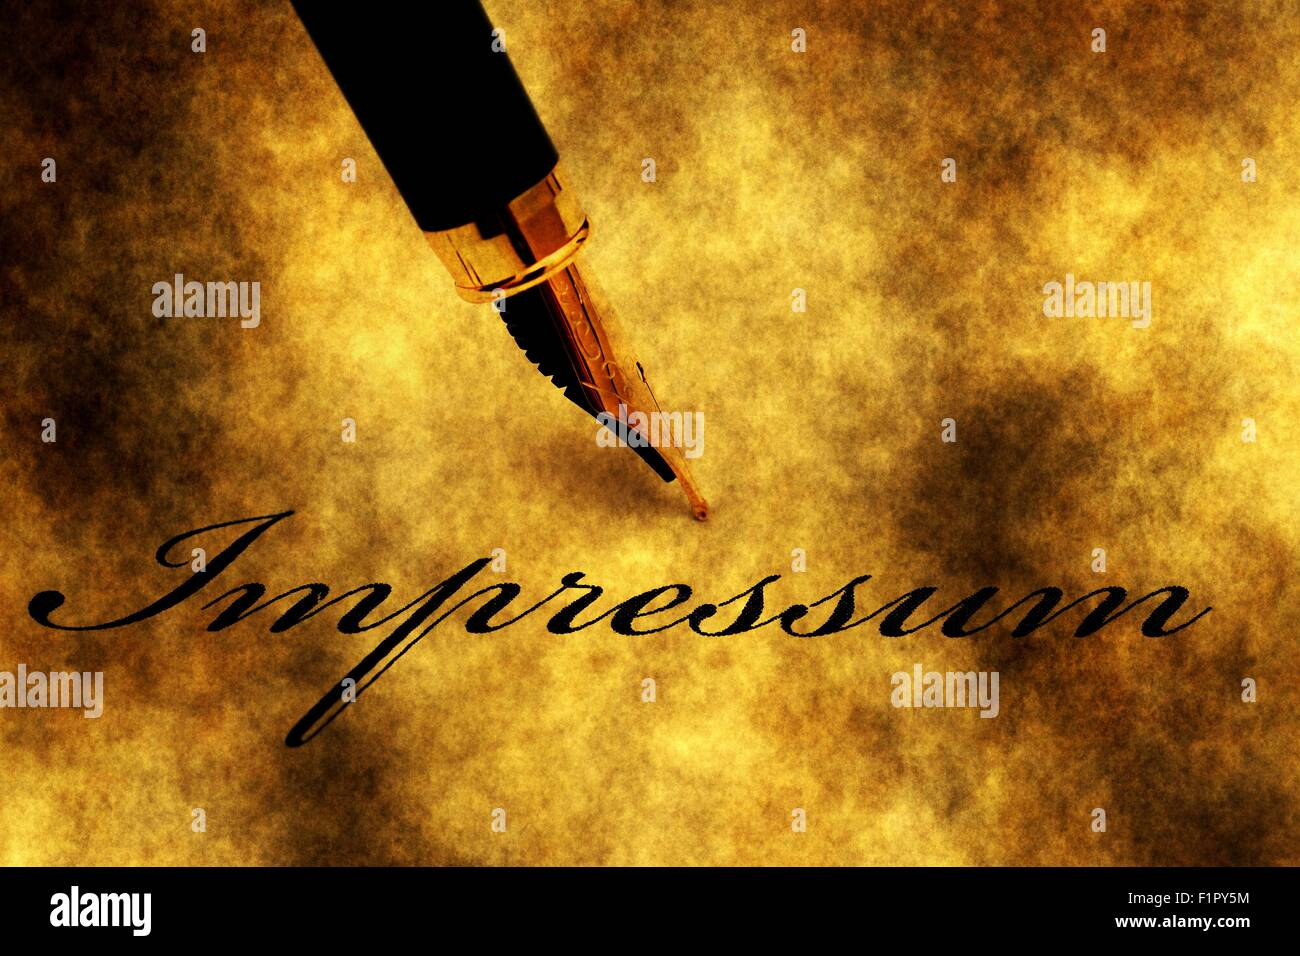 Impressum text and fountain pen - Stock Image